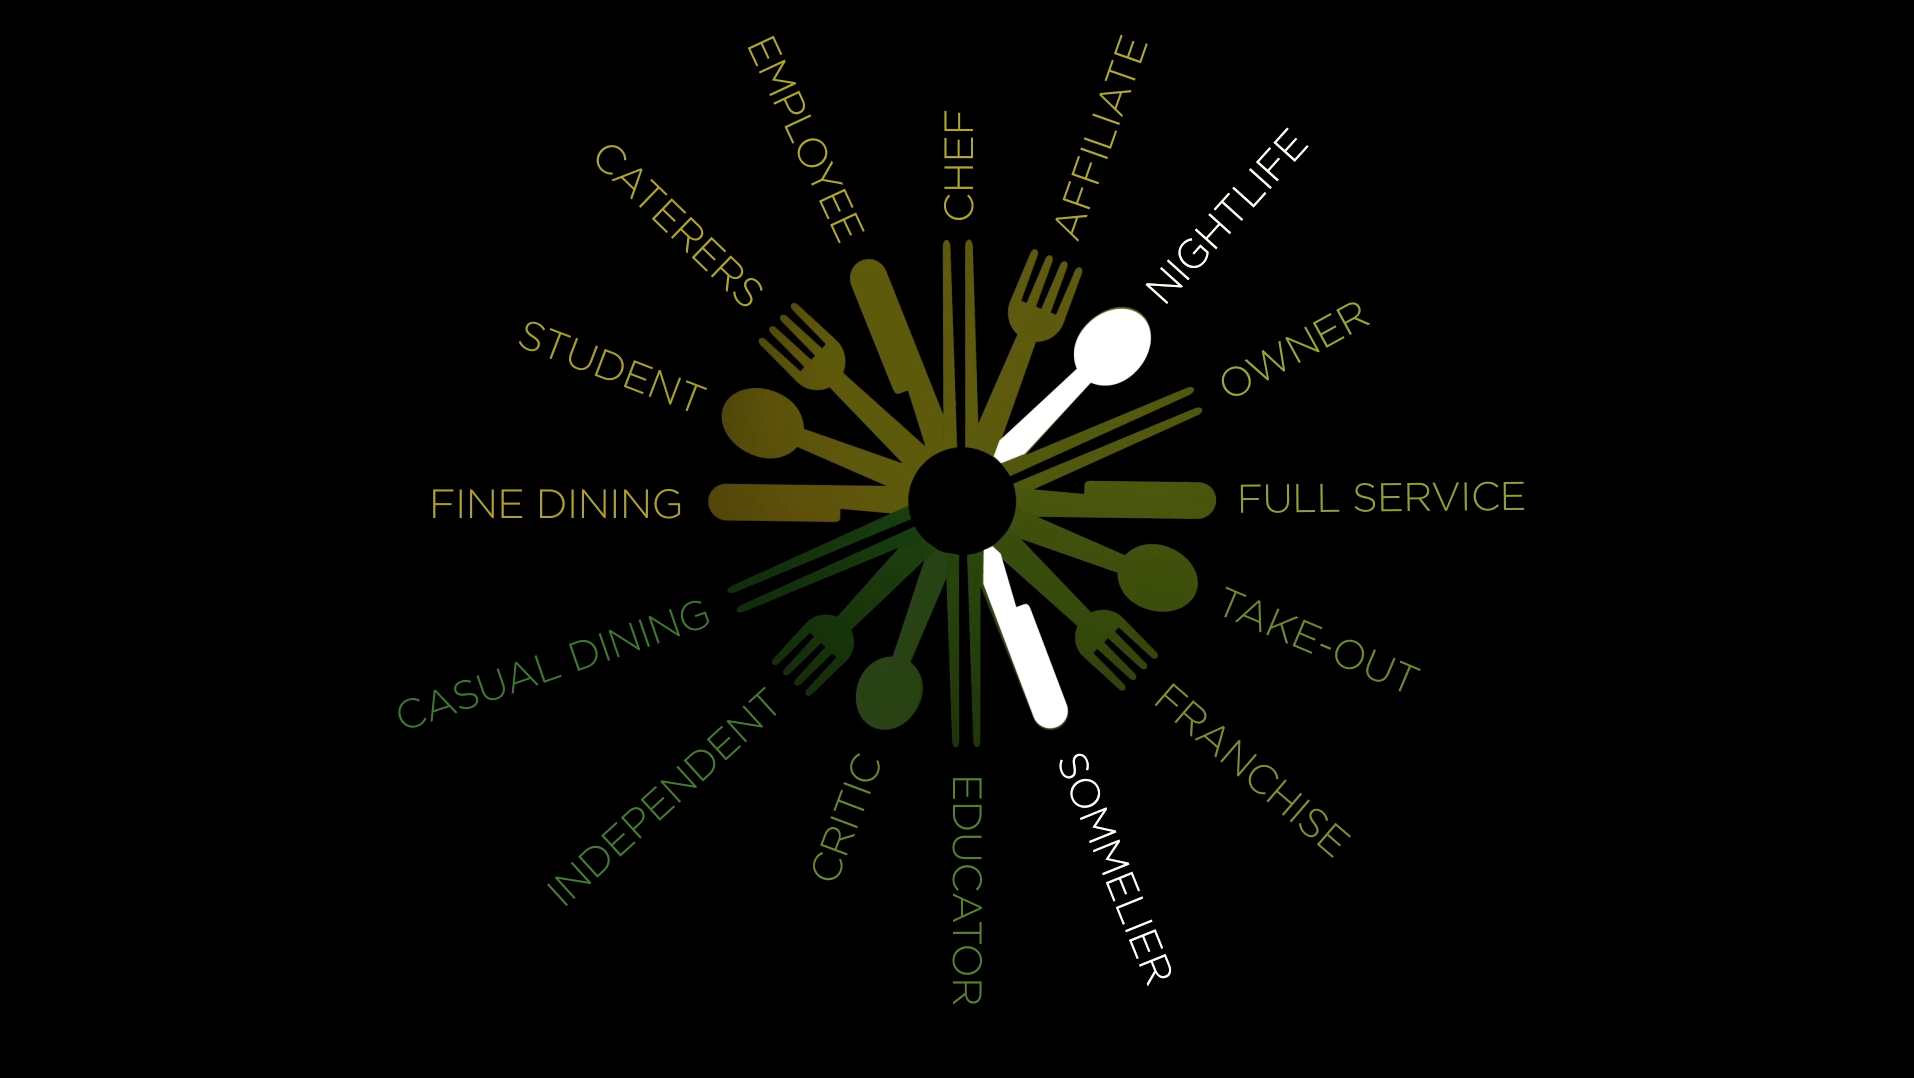 Project image 3 for Logo Animation, New York State Restaurant Association